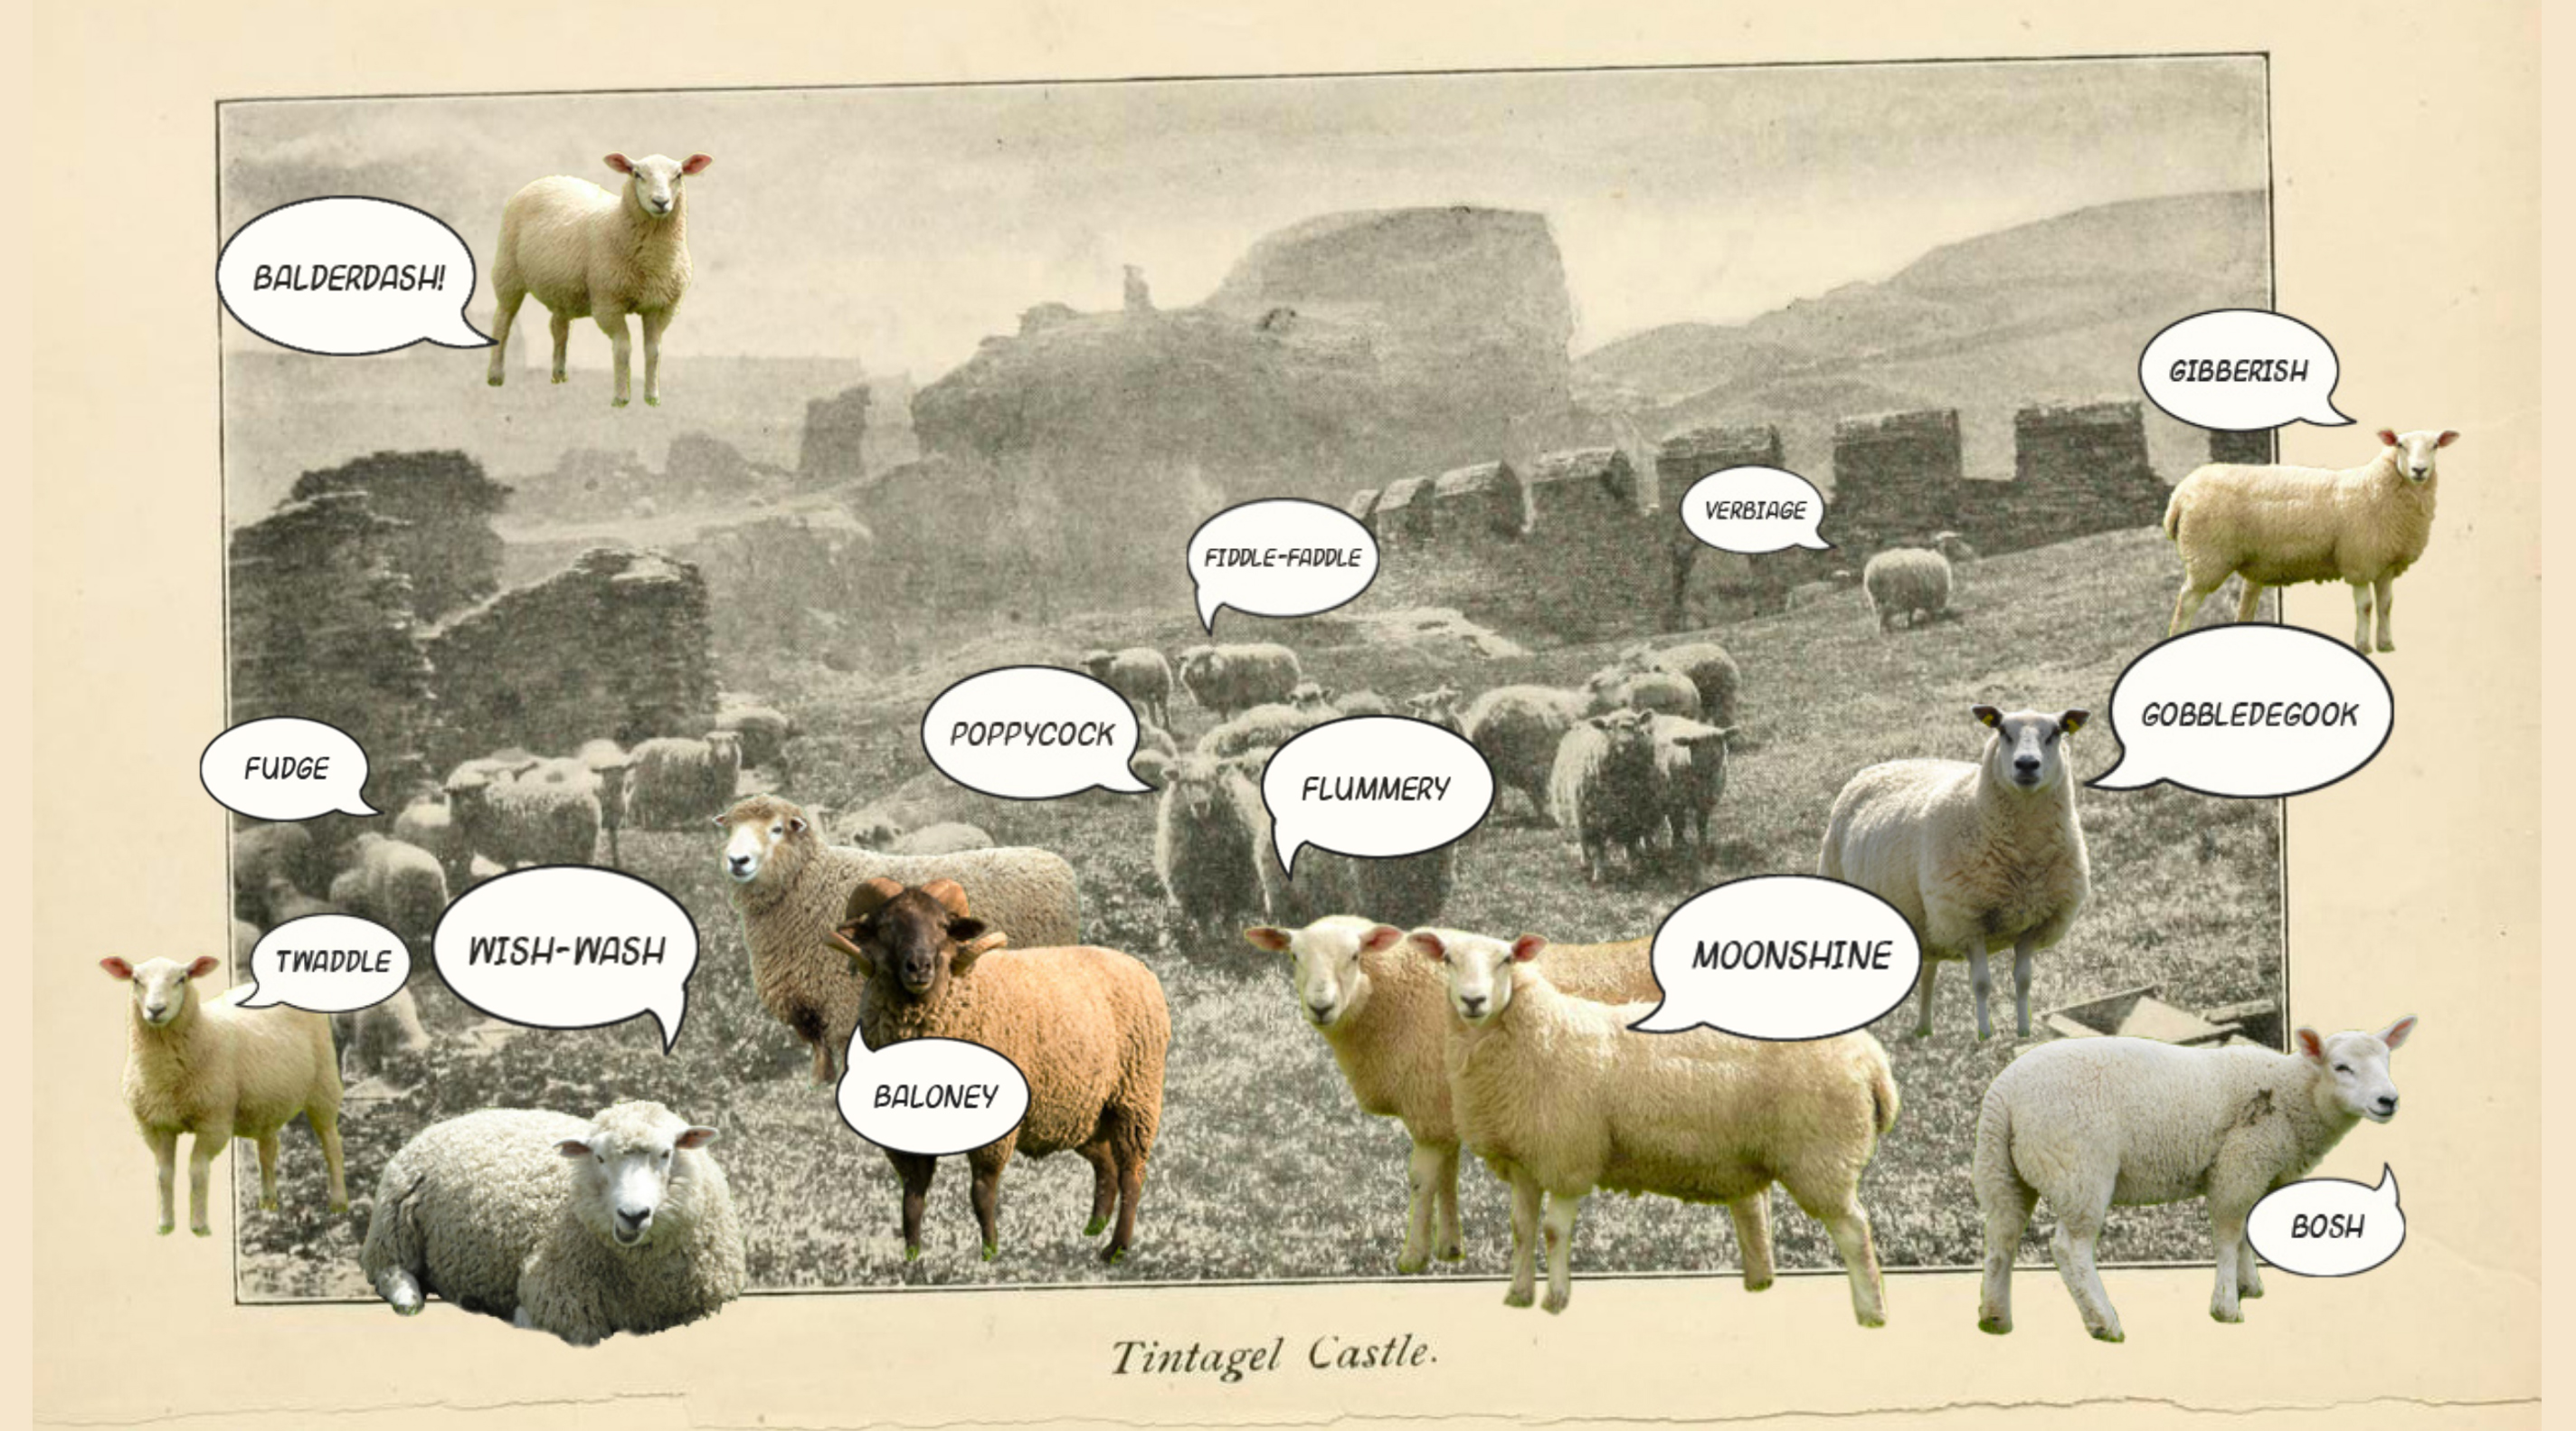 collage with photos of sheep and speech bubbles with slang synonyms of nonsense